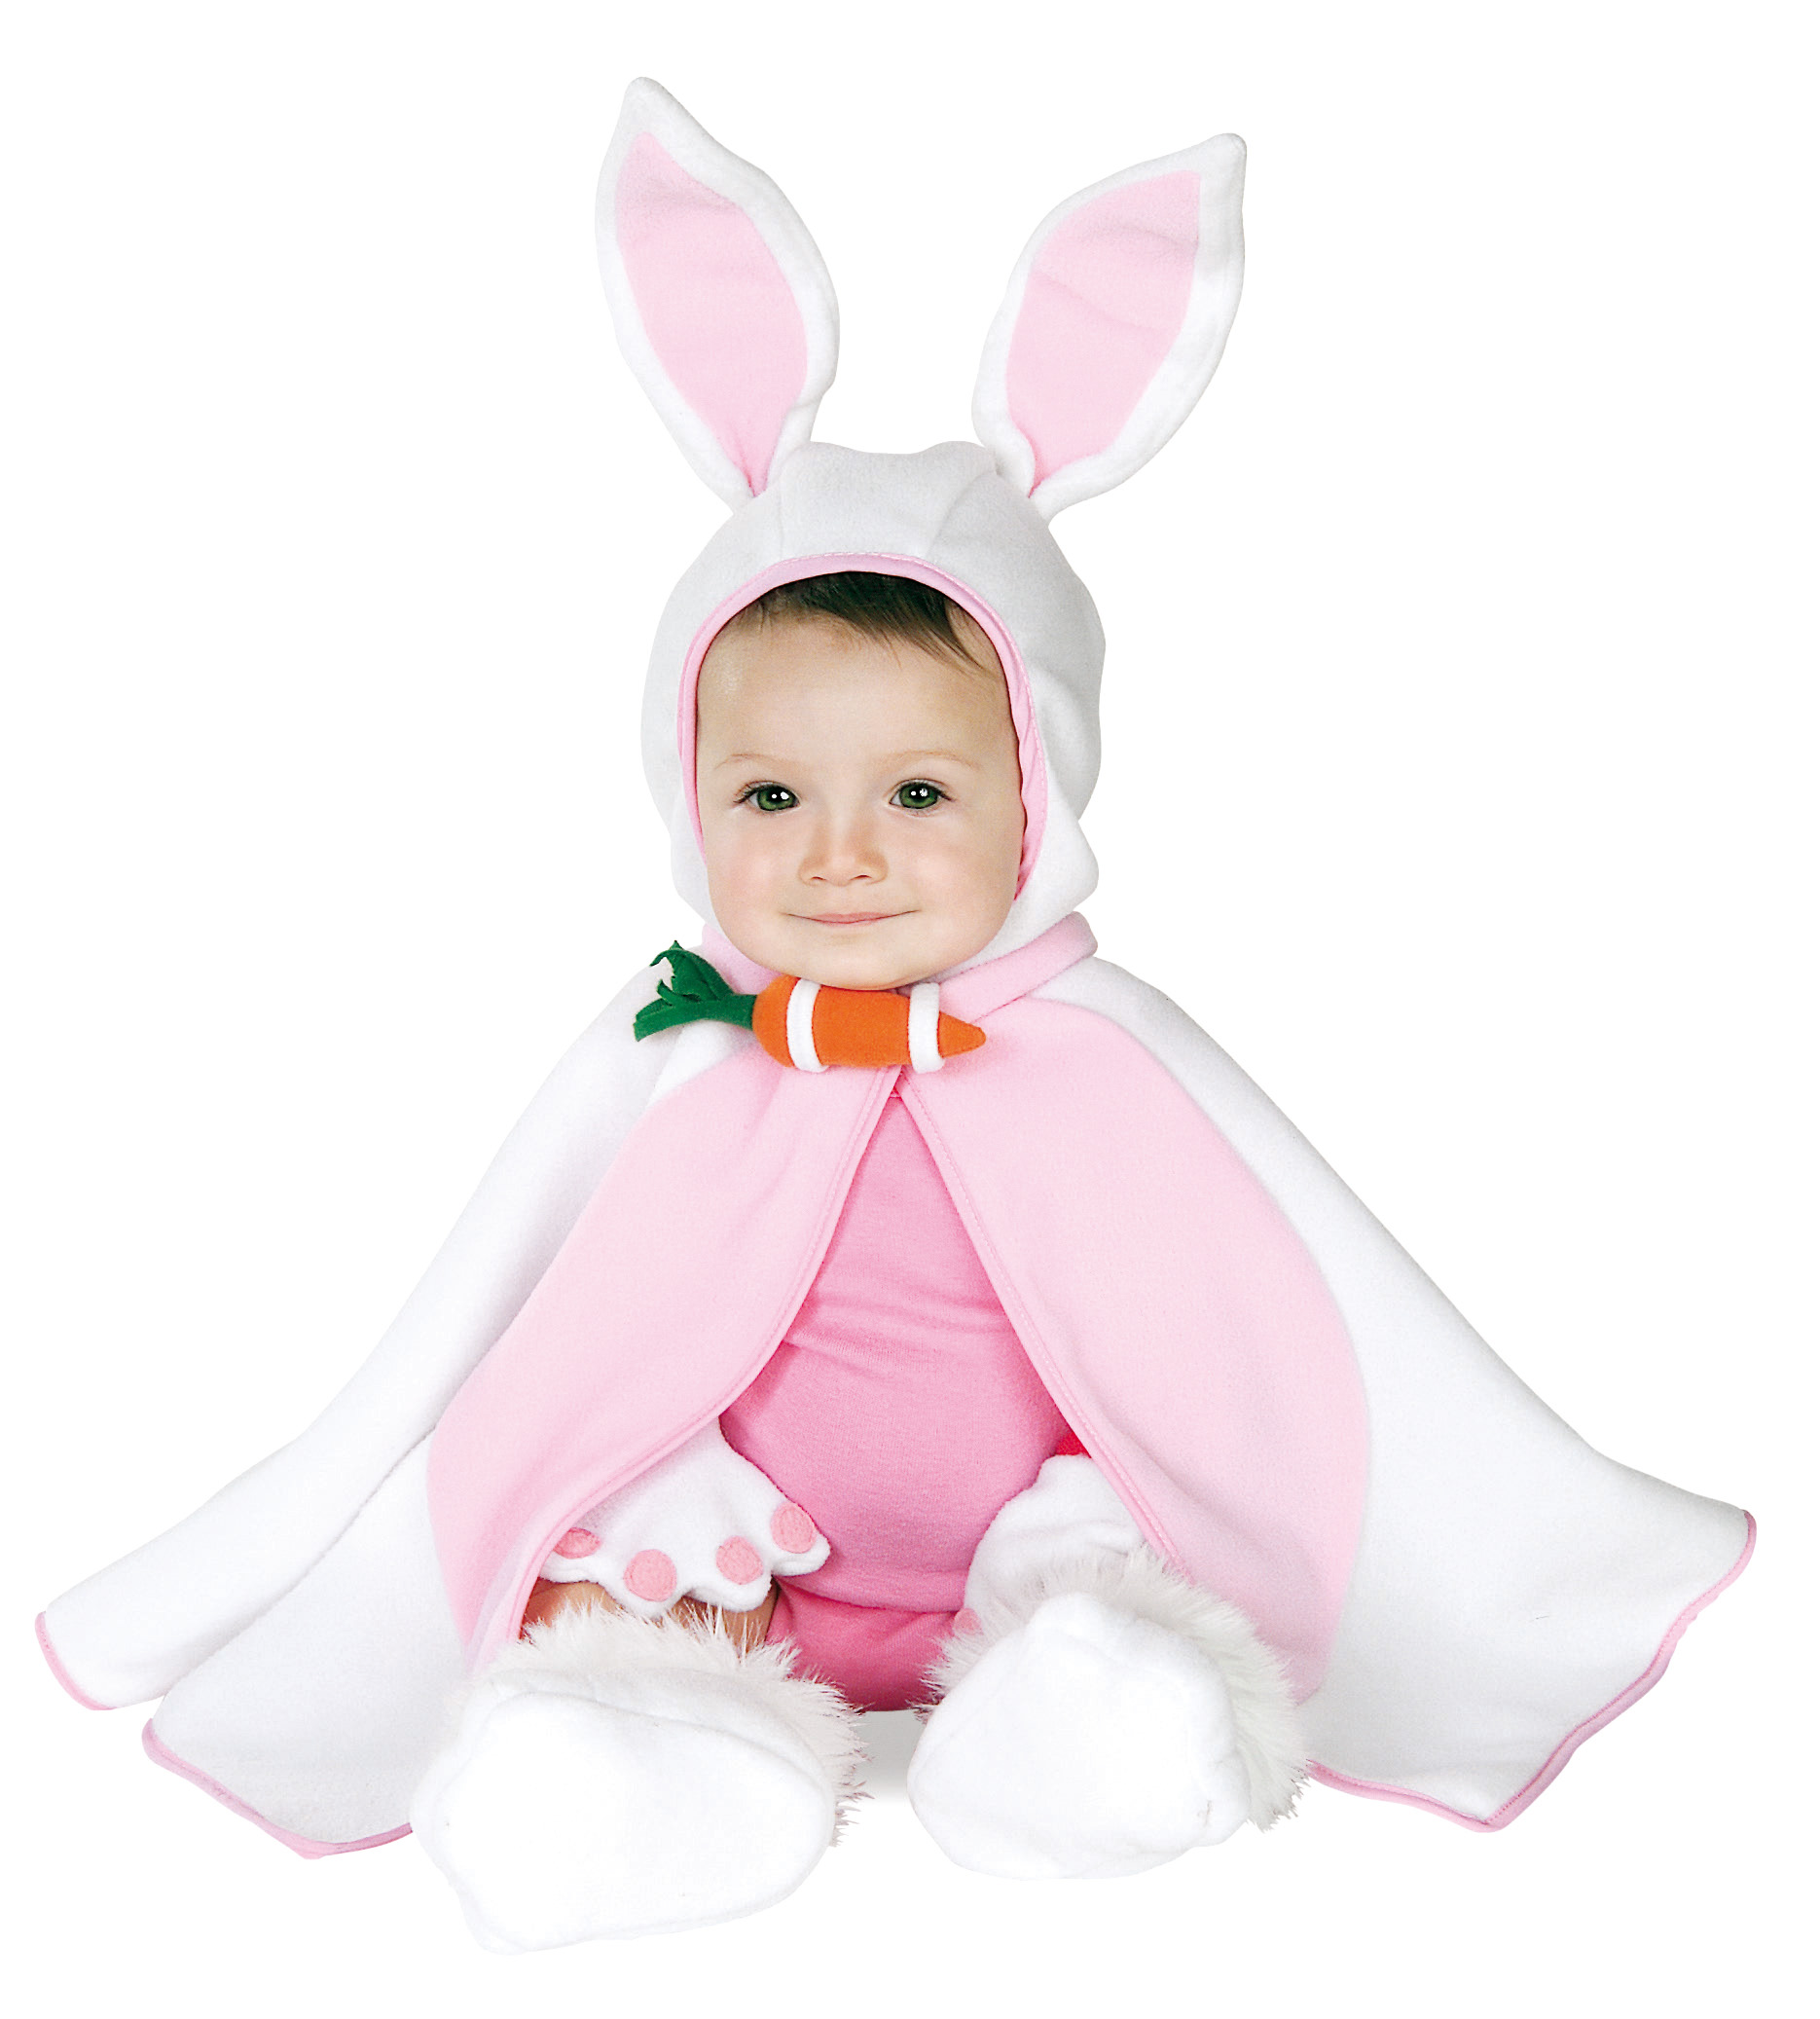 http://cdn.deguisetoi.fr/images/rep_articles/gra/be/deguisement-de-bebe-lapin_1.jpg